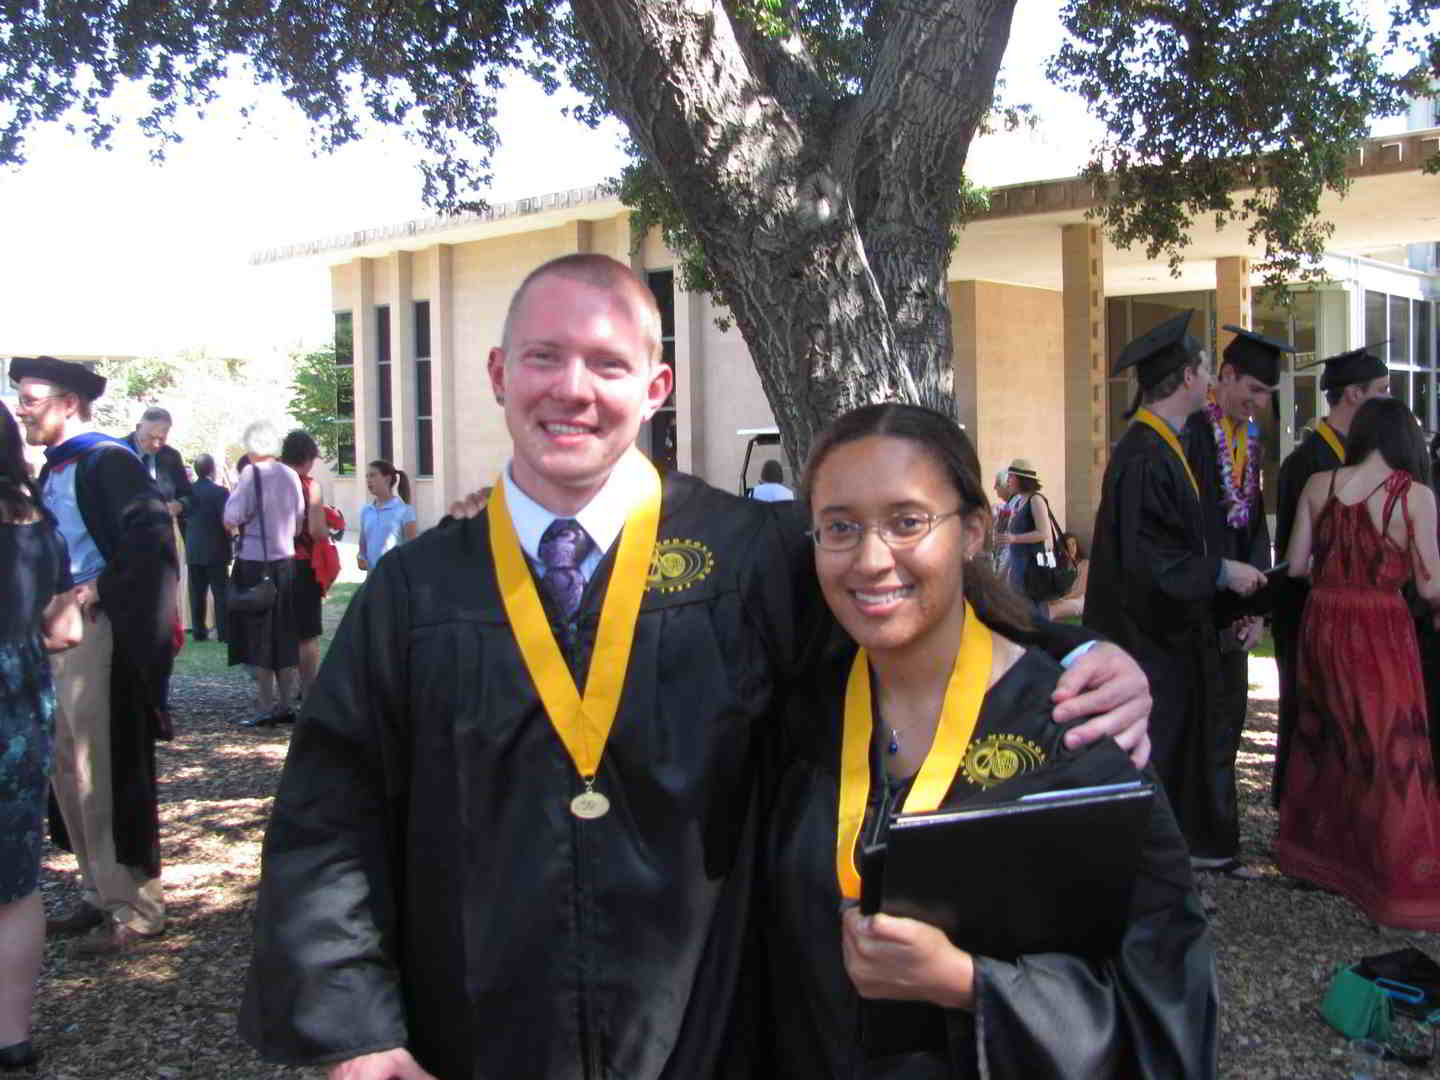 Chance and I at our graduation from Harvey Mudd College in May 2013.